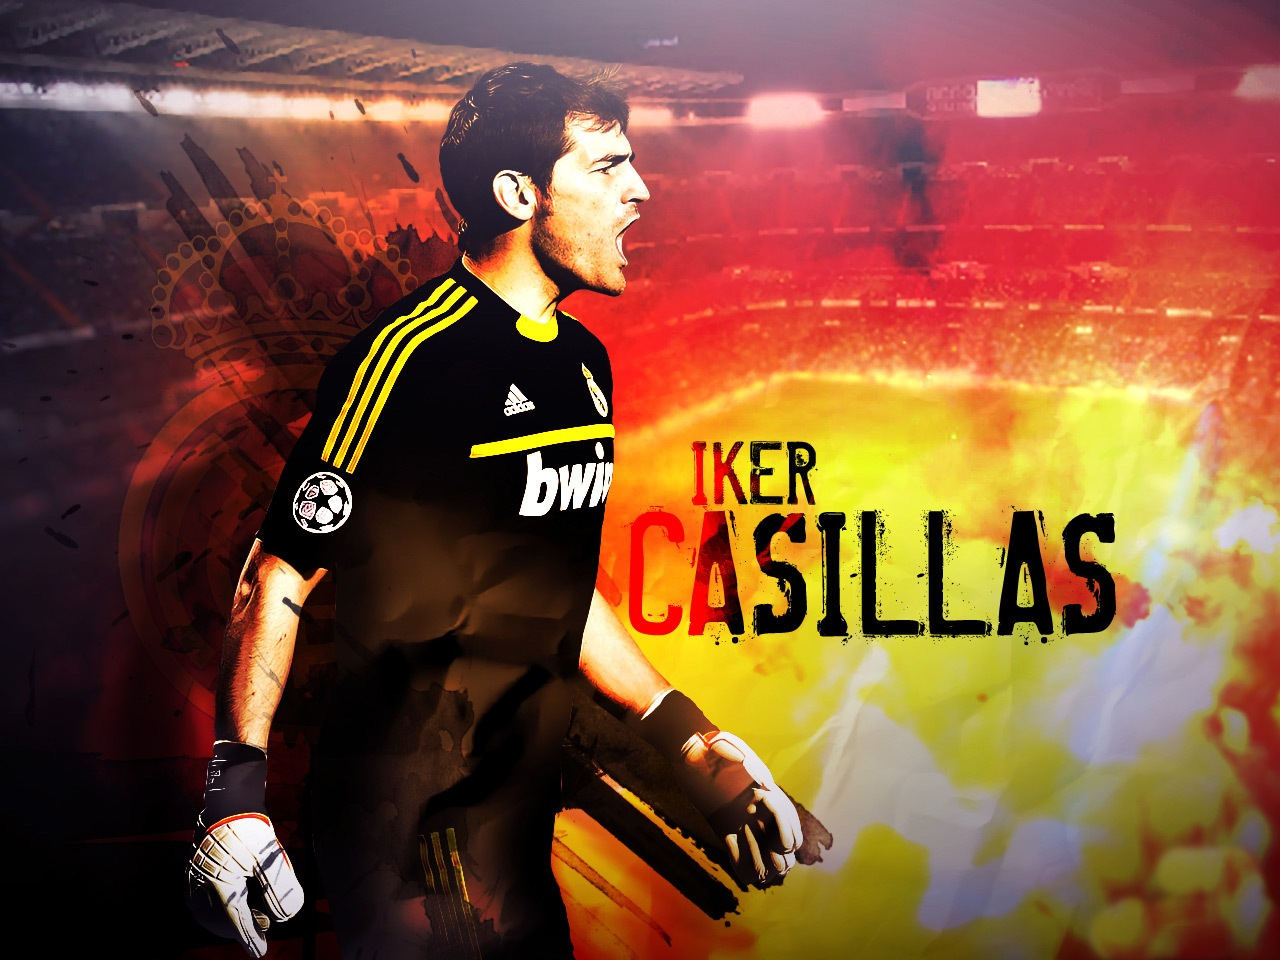 Chicharito Wallpapers Hd Hot Babes Single Iker Casillas Hd Wallpapers 2012 2013